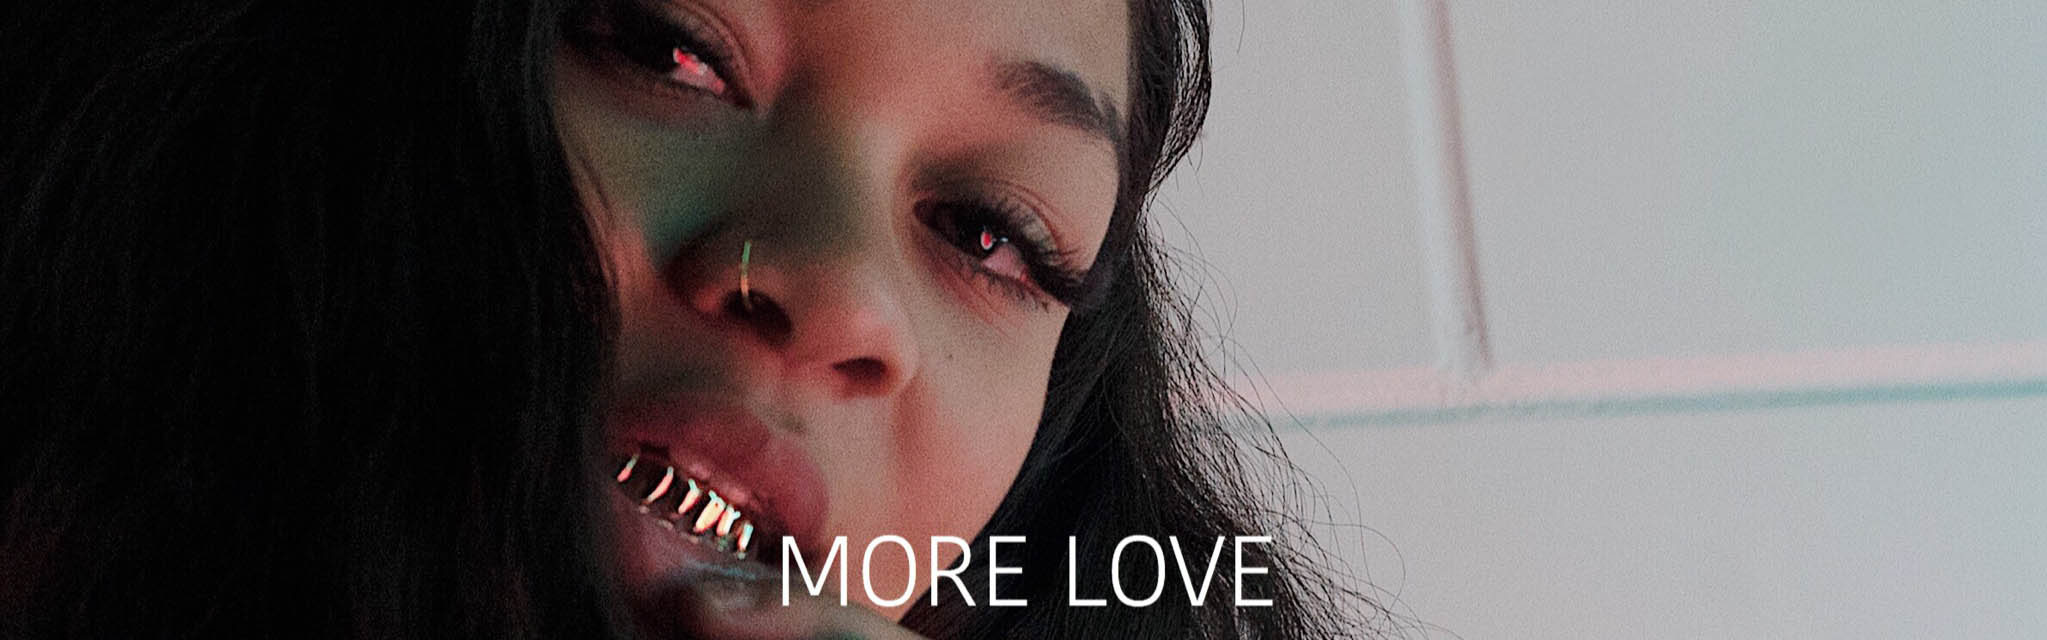 Wolftyla More love